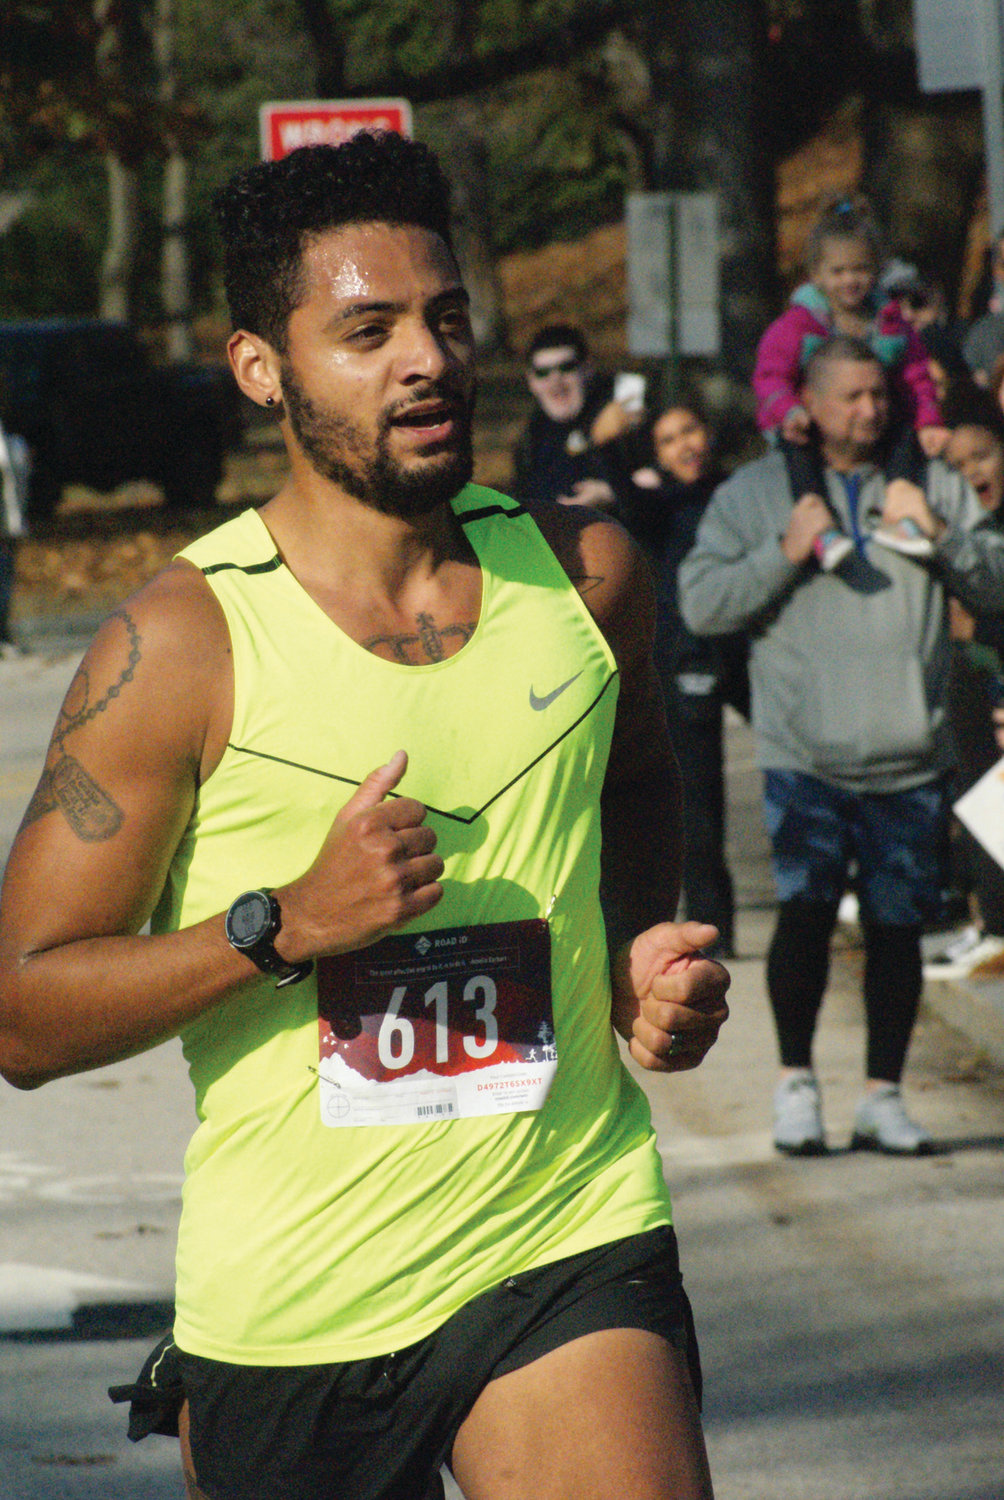 CROSSING THE LINE: Bronson Venable of Warwick won the Park View Veterans Day 5K with a time of 15 minutes, 35 seconds. It is the third year in a row he has taken top honors.